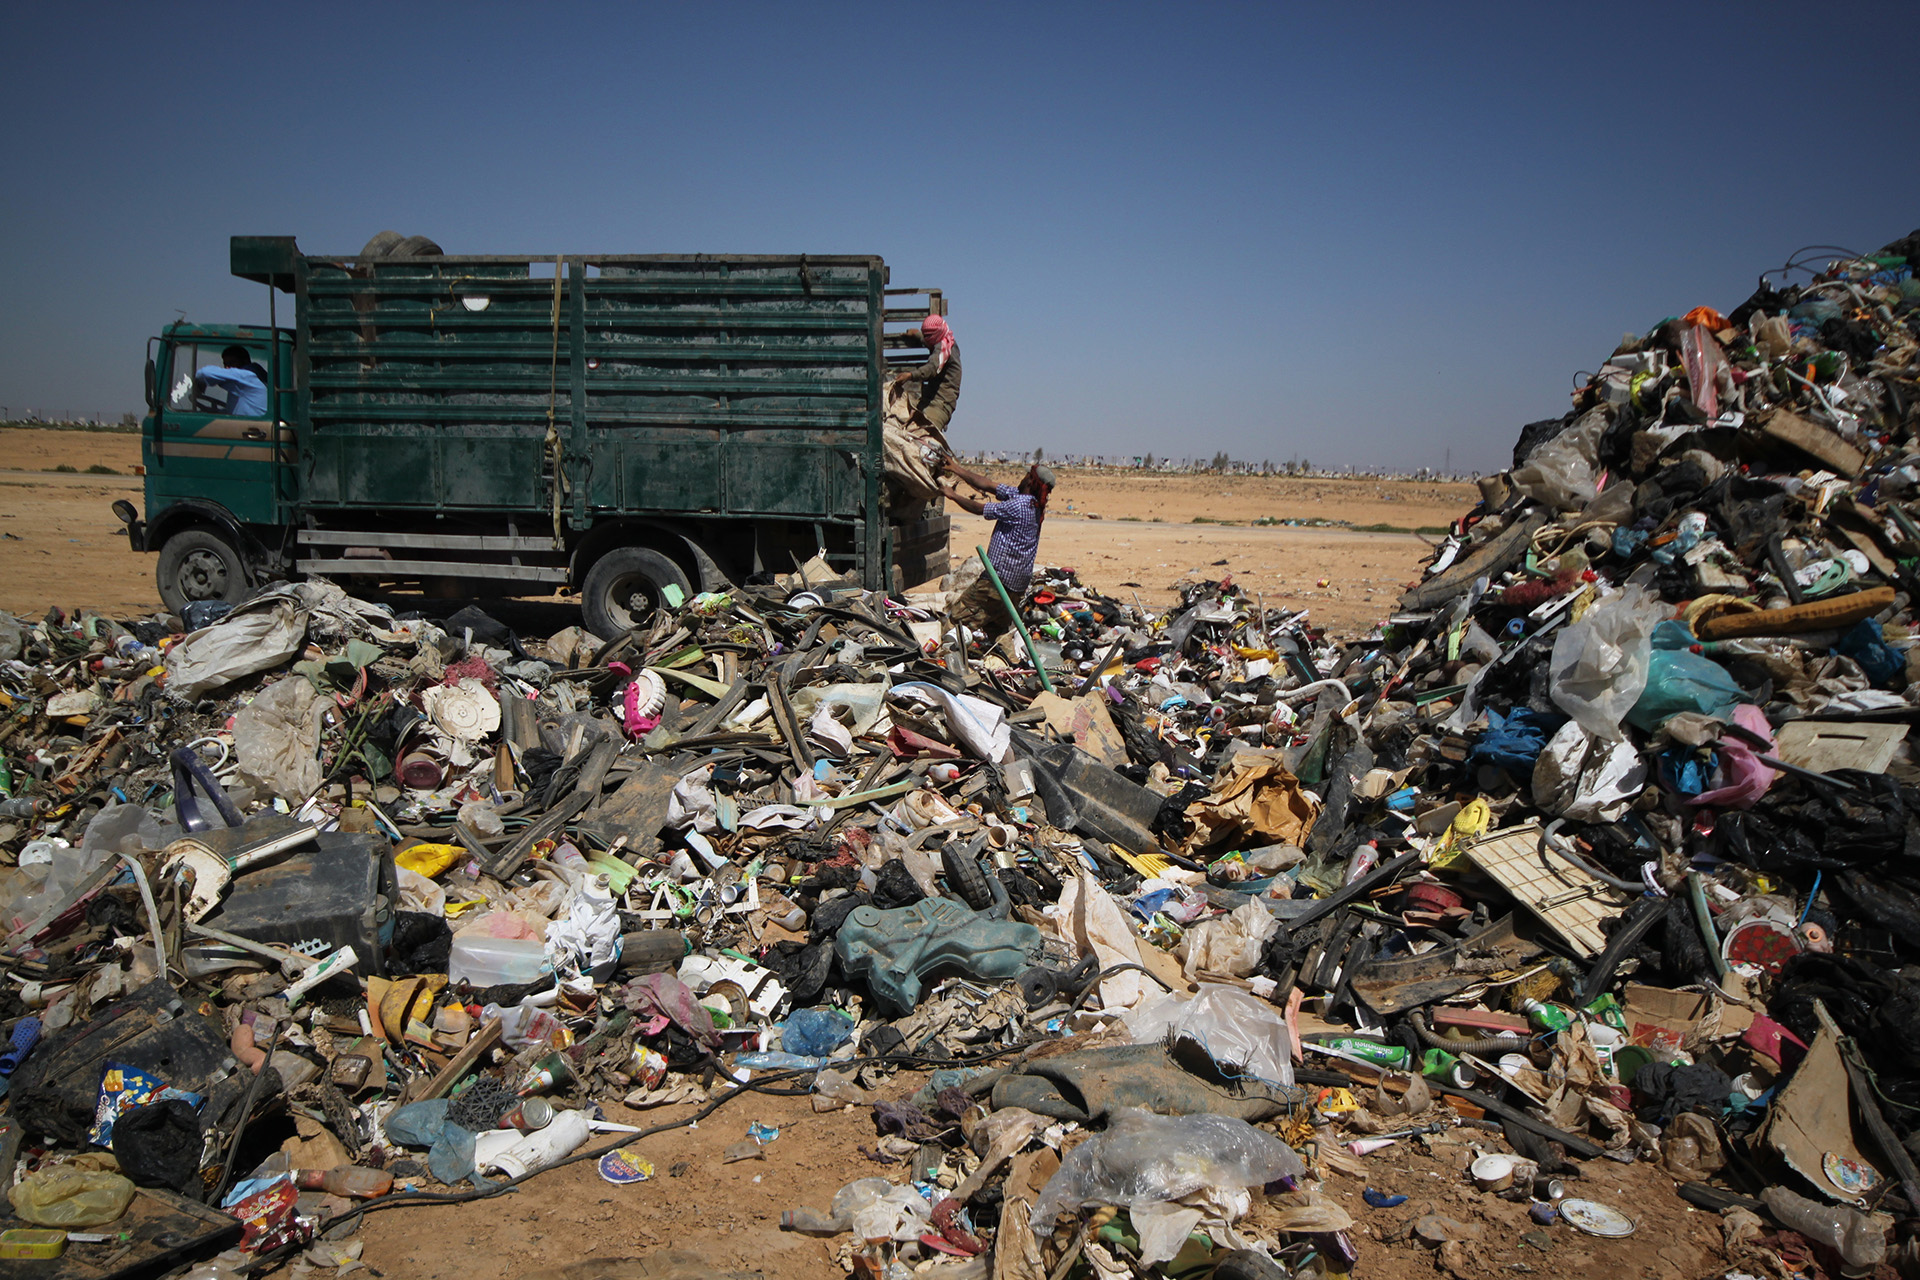 Carey Marks Photography, Al Huseyniyat landfill, documentary photography, Palestinian Refugee, photographic stories, photography, photojournalism, Refugees, Refugees in Jordan, Waste Recovery, Waste, Syrian refugees, Palestinian refugees, recycling, landfill